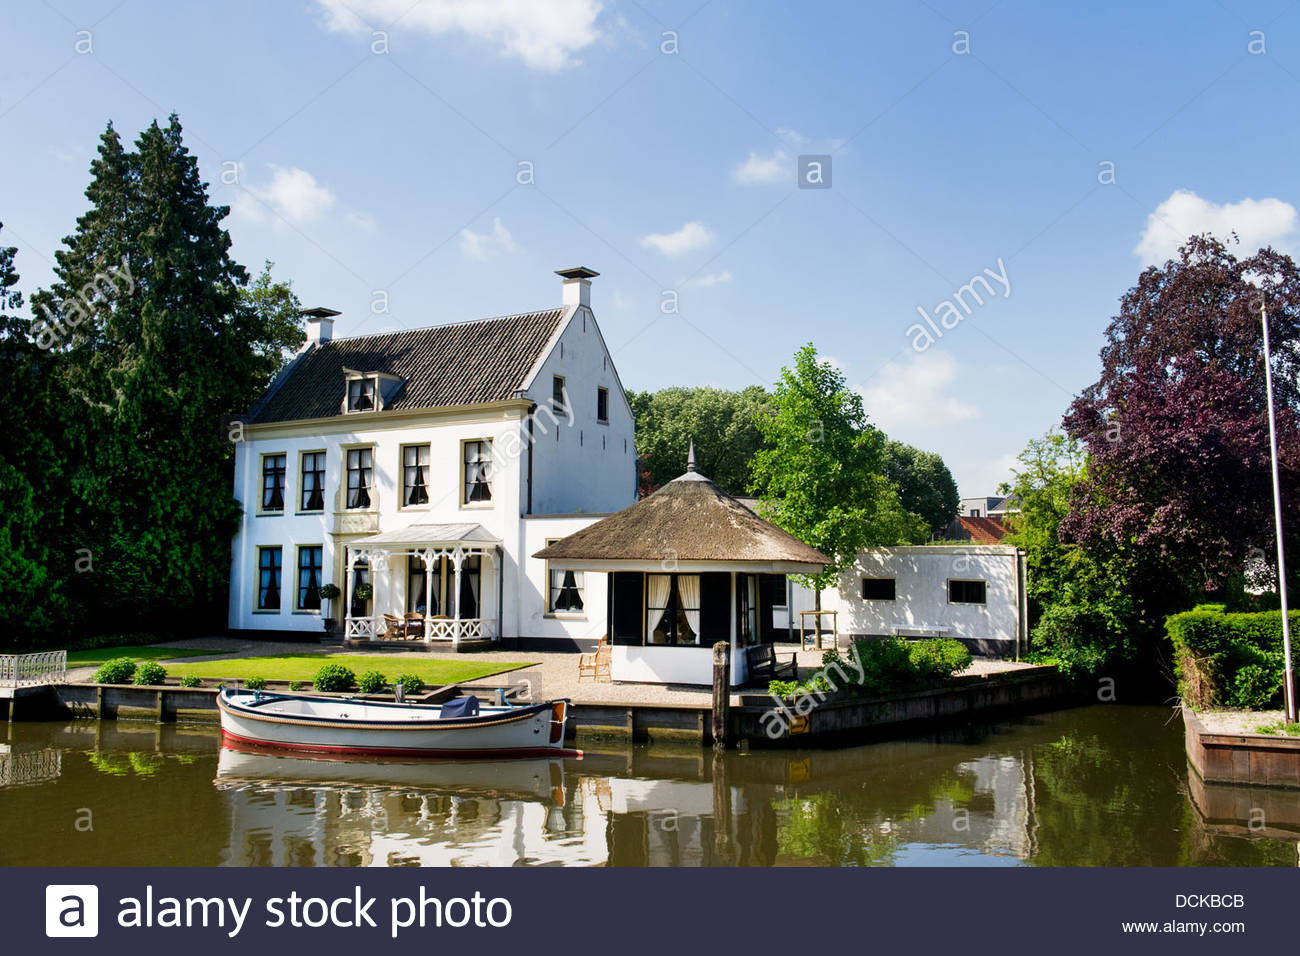 Old Villa in Holland Stock Photo